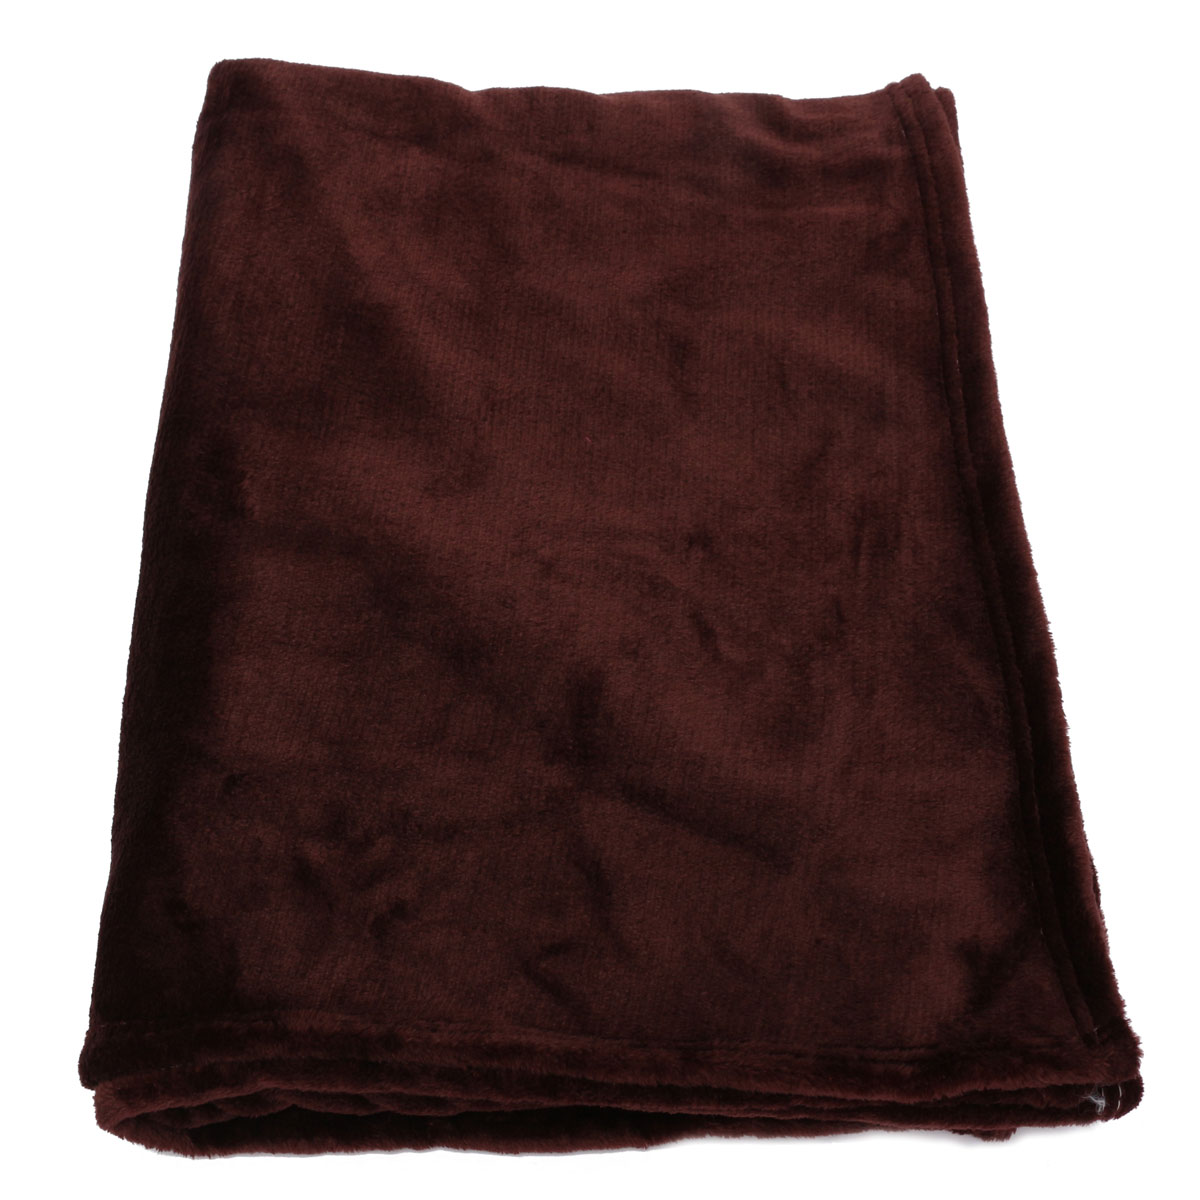 Luxury decorative soft sofa bed fleece throw blanket coral for Decorative bed throws